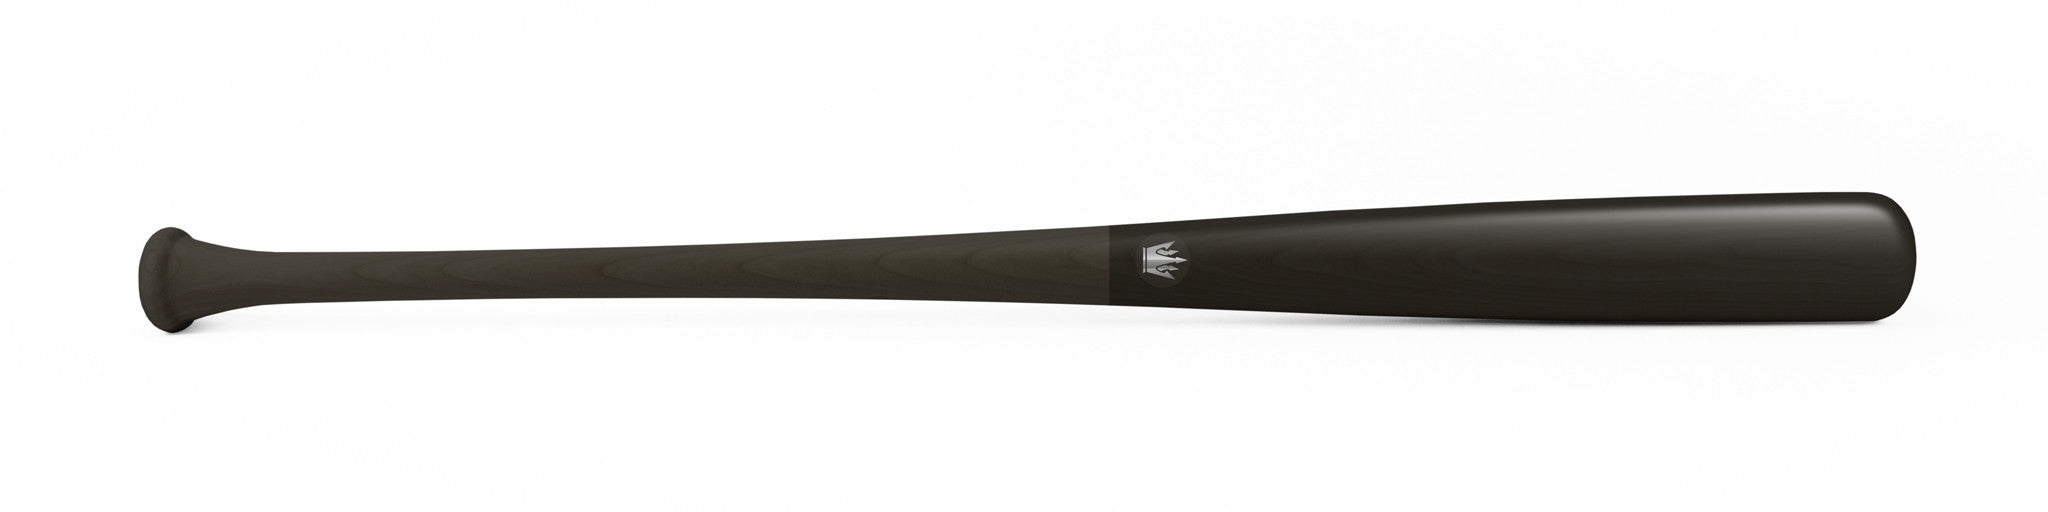 Wood bat - Maple model 271 Black Knight - 8